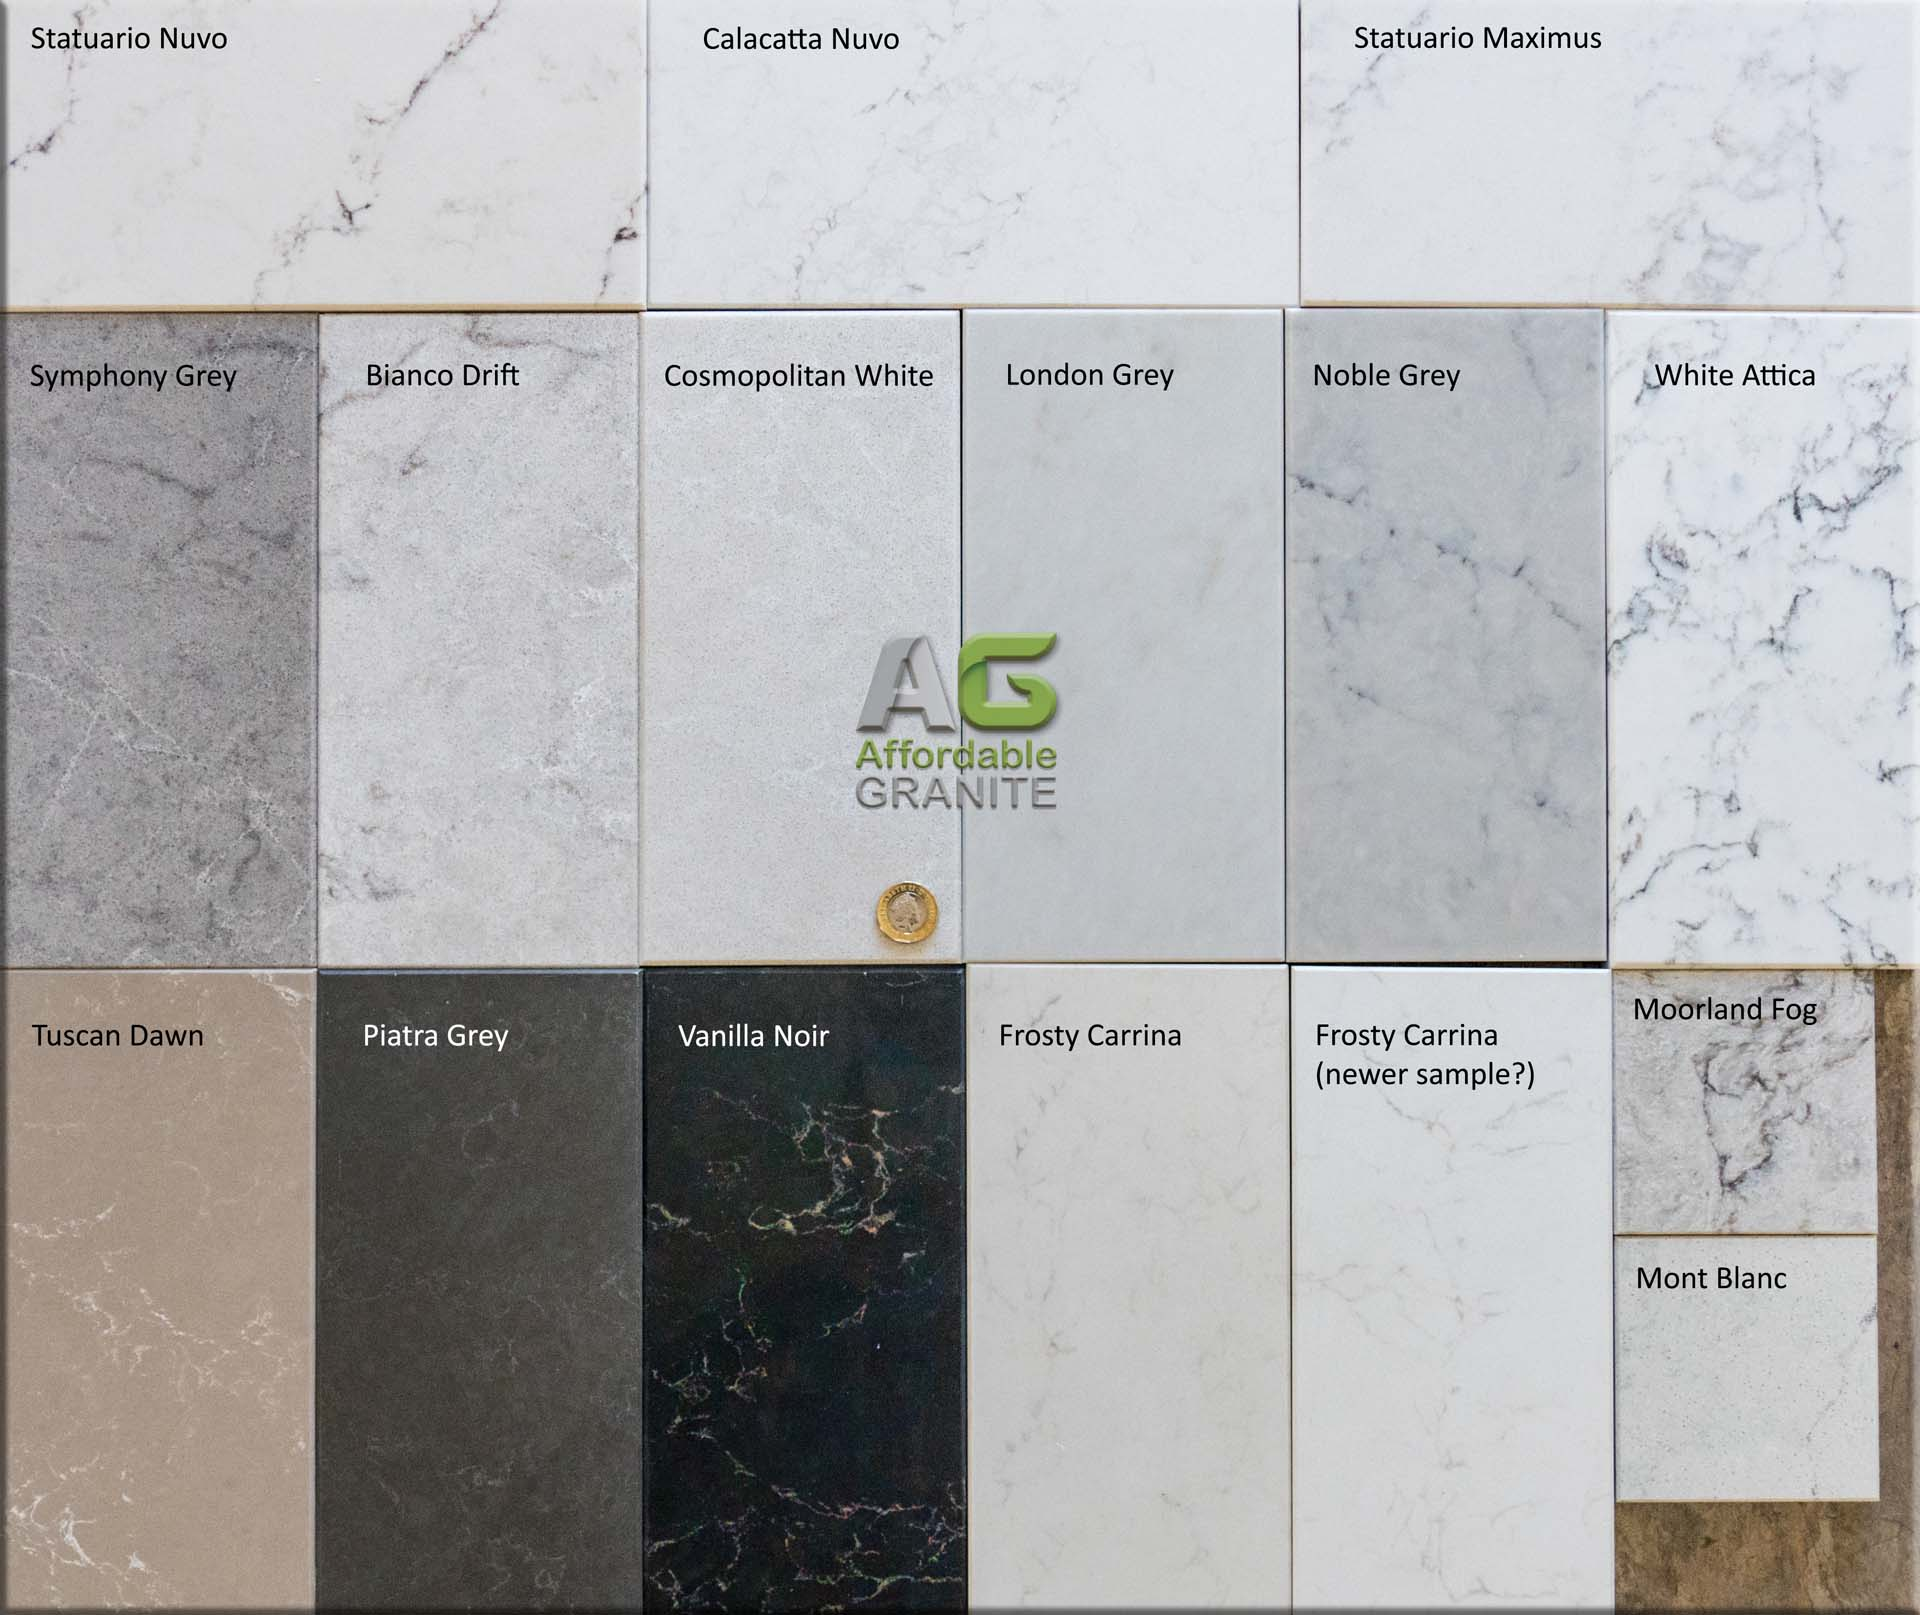 Caesarstone Marbled Quartz Groups 4 and 5a